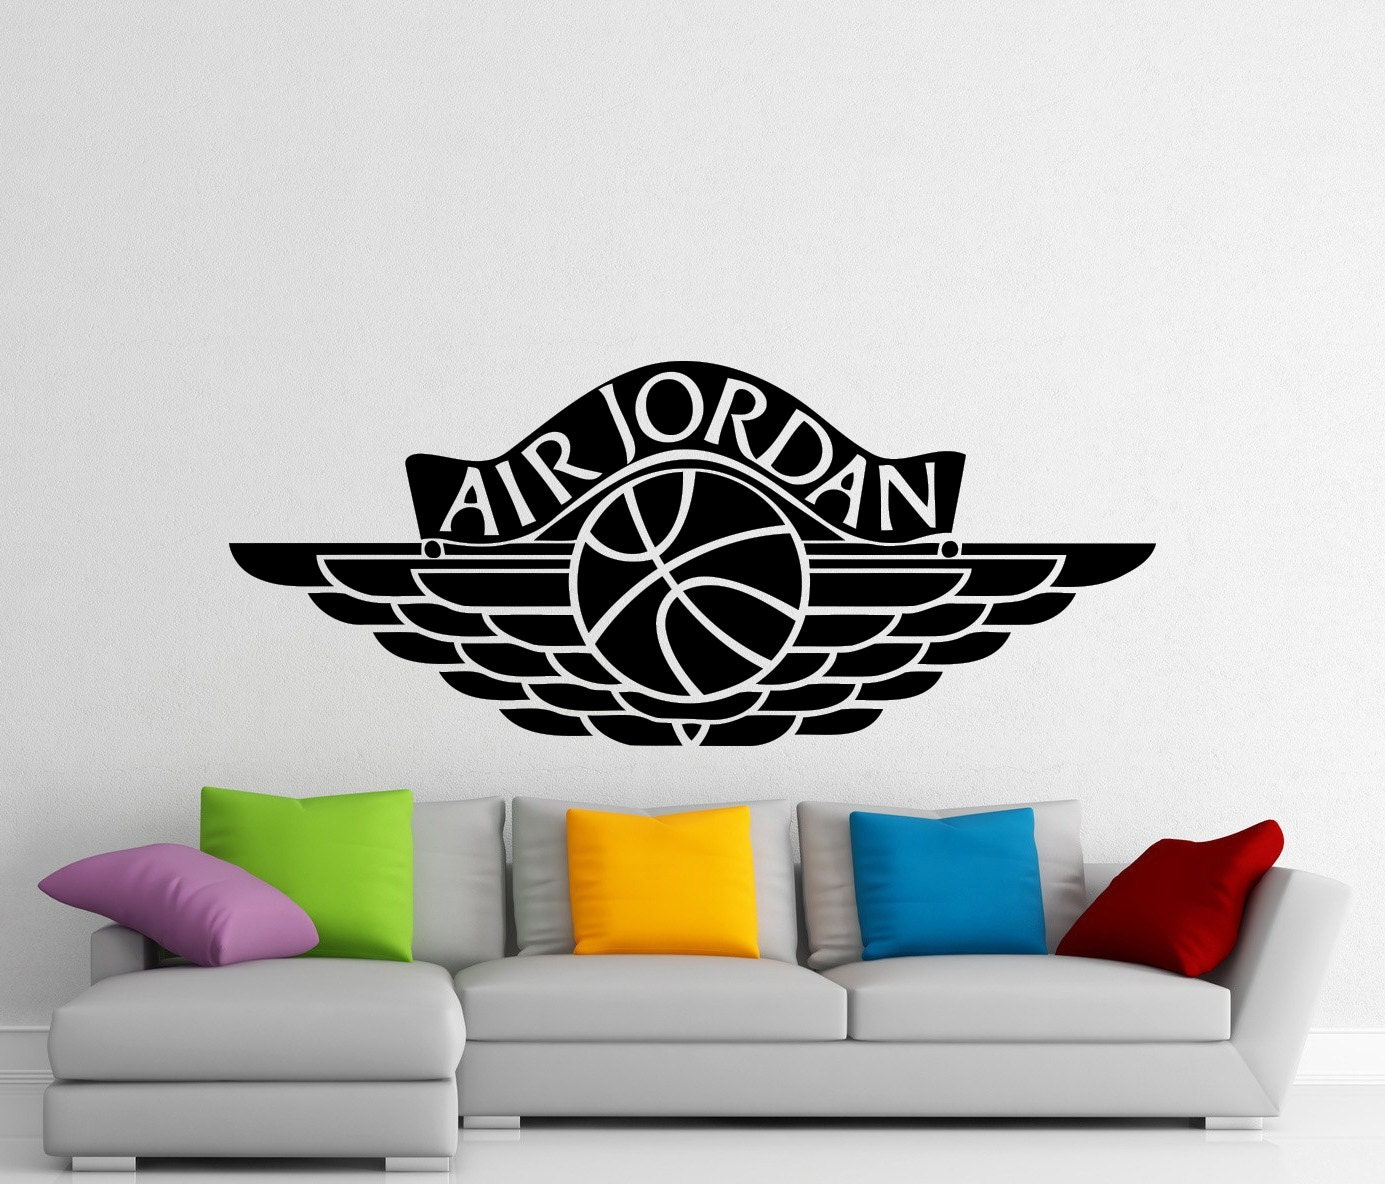 air jordan wall sticker sports basketball logo vinyl decal michael jordan 23 decal wall sticker art home decor